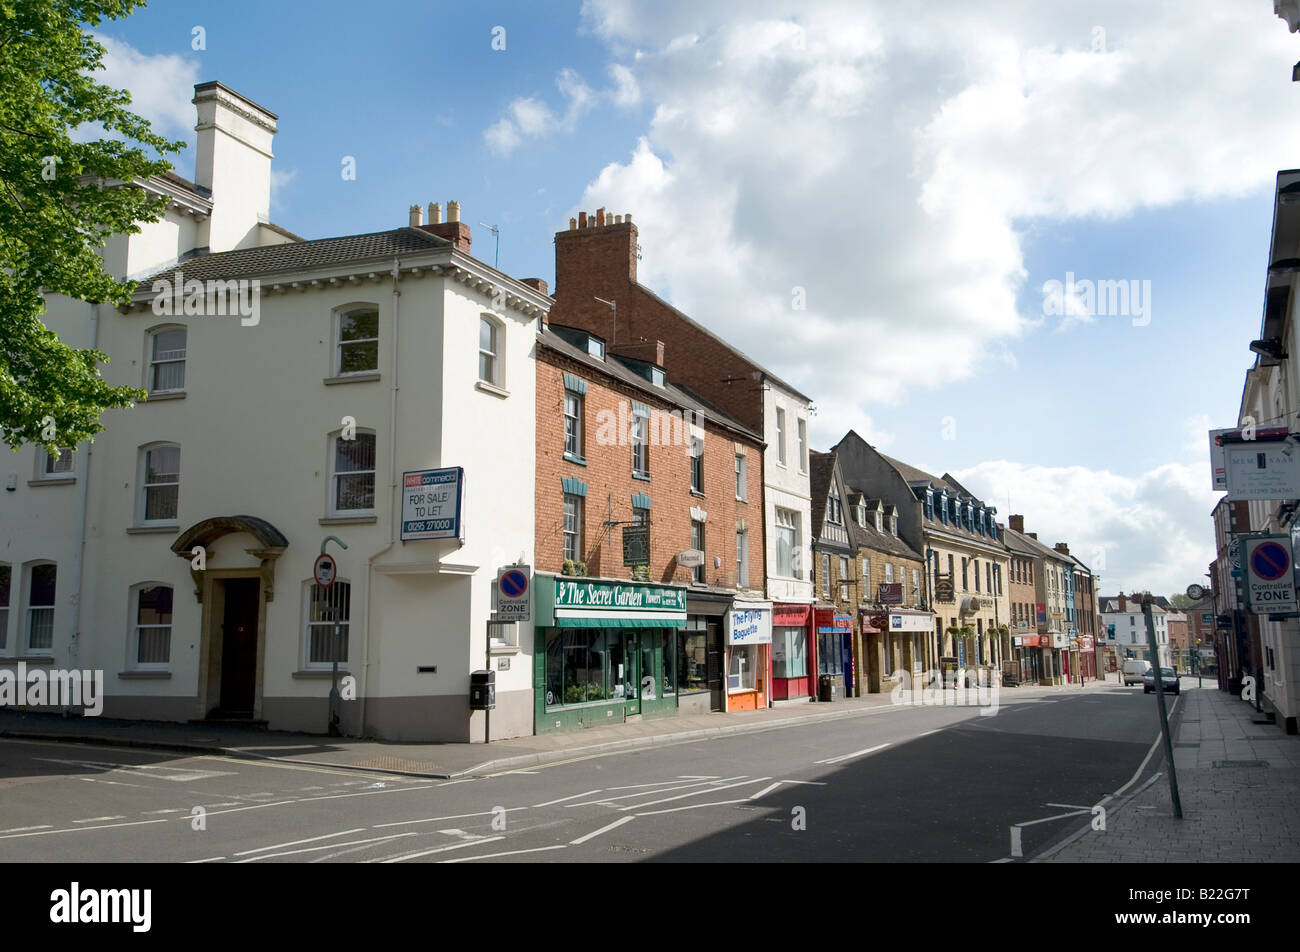 Banbury the market town and source of nursery rhyme with a cross - Stock Image